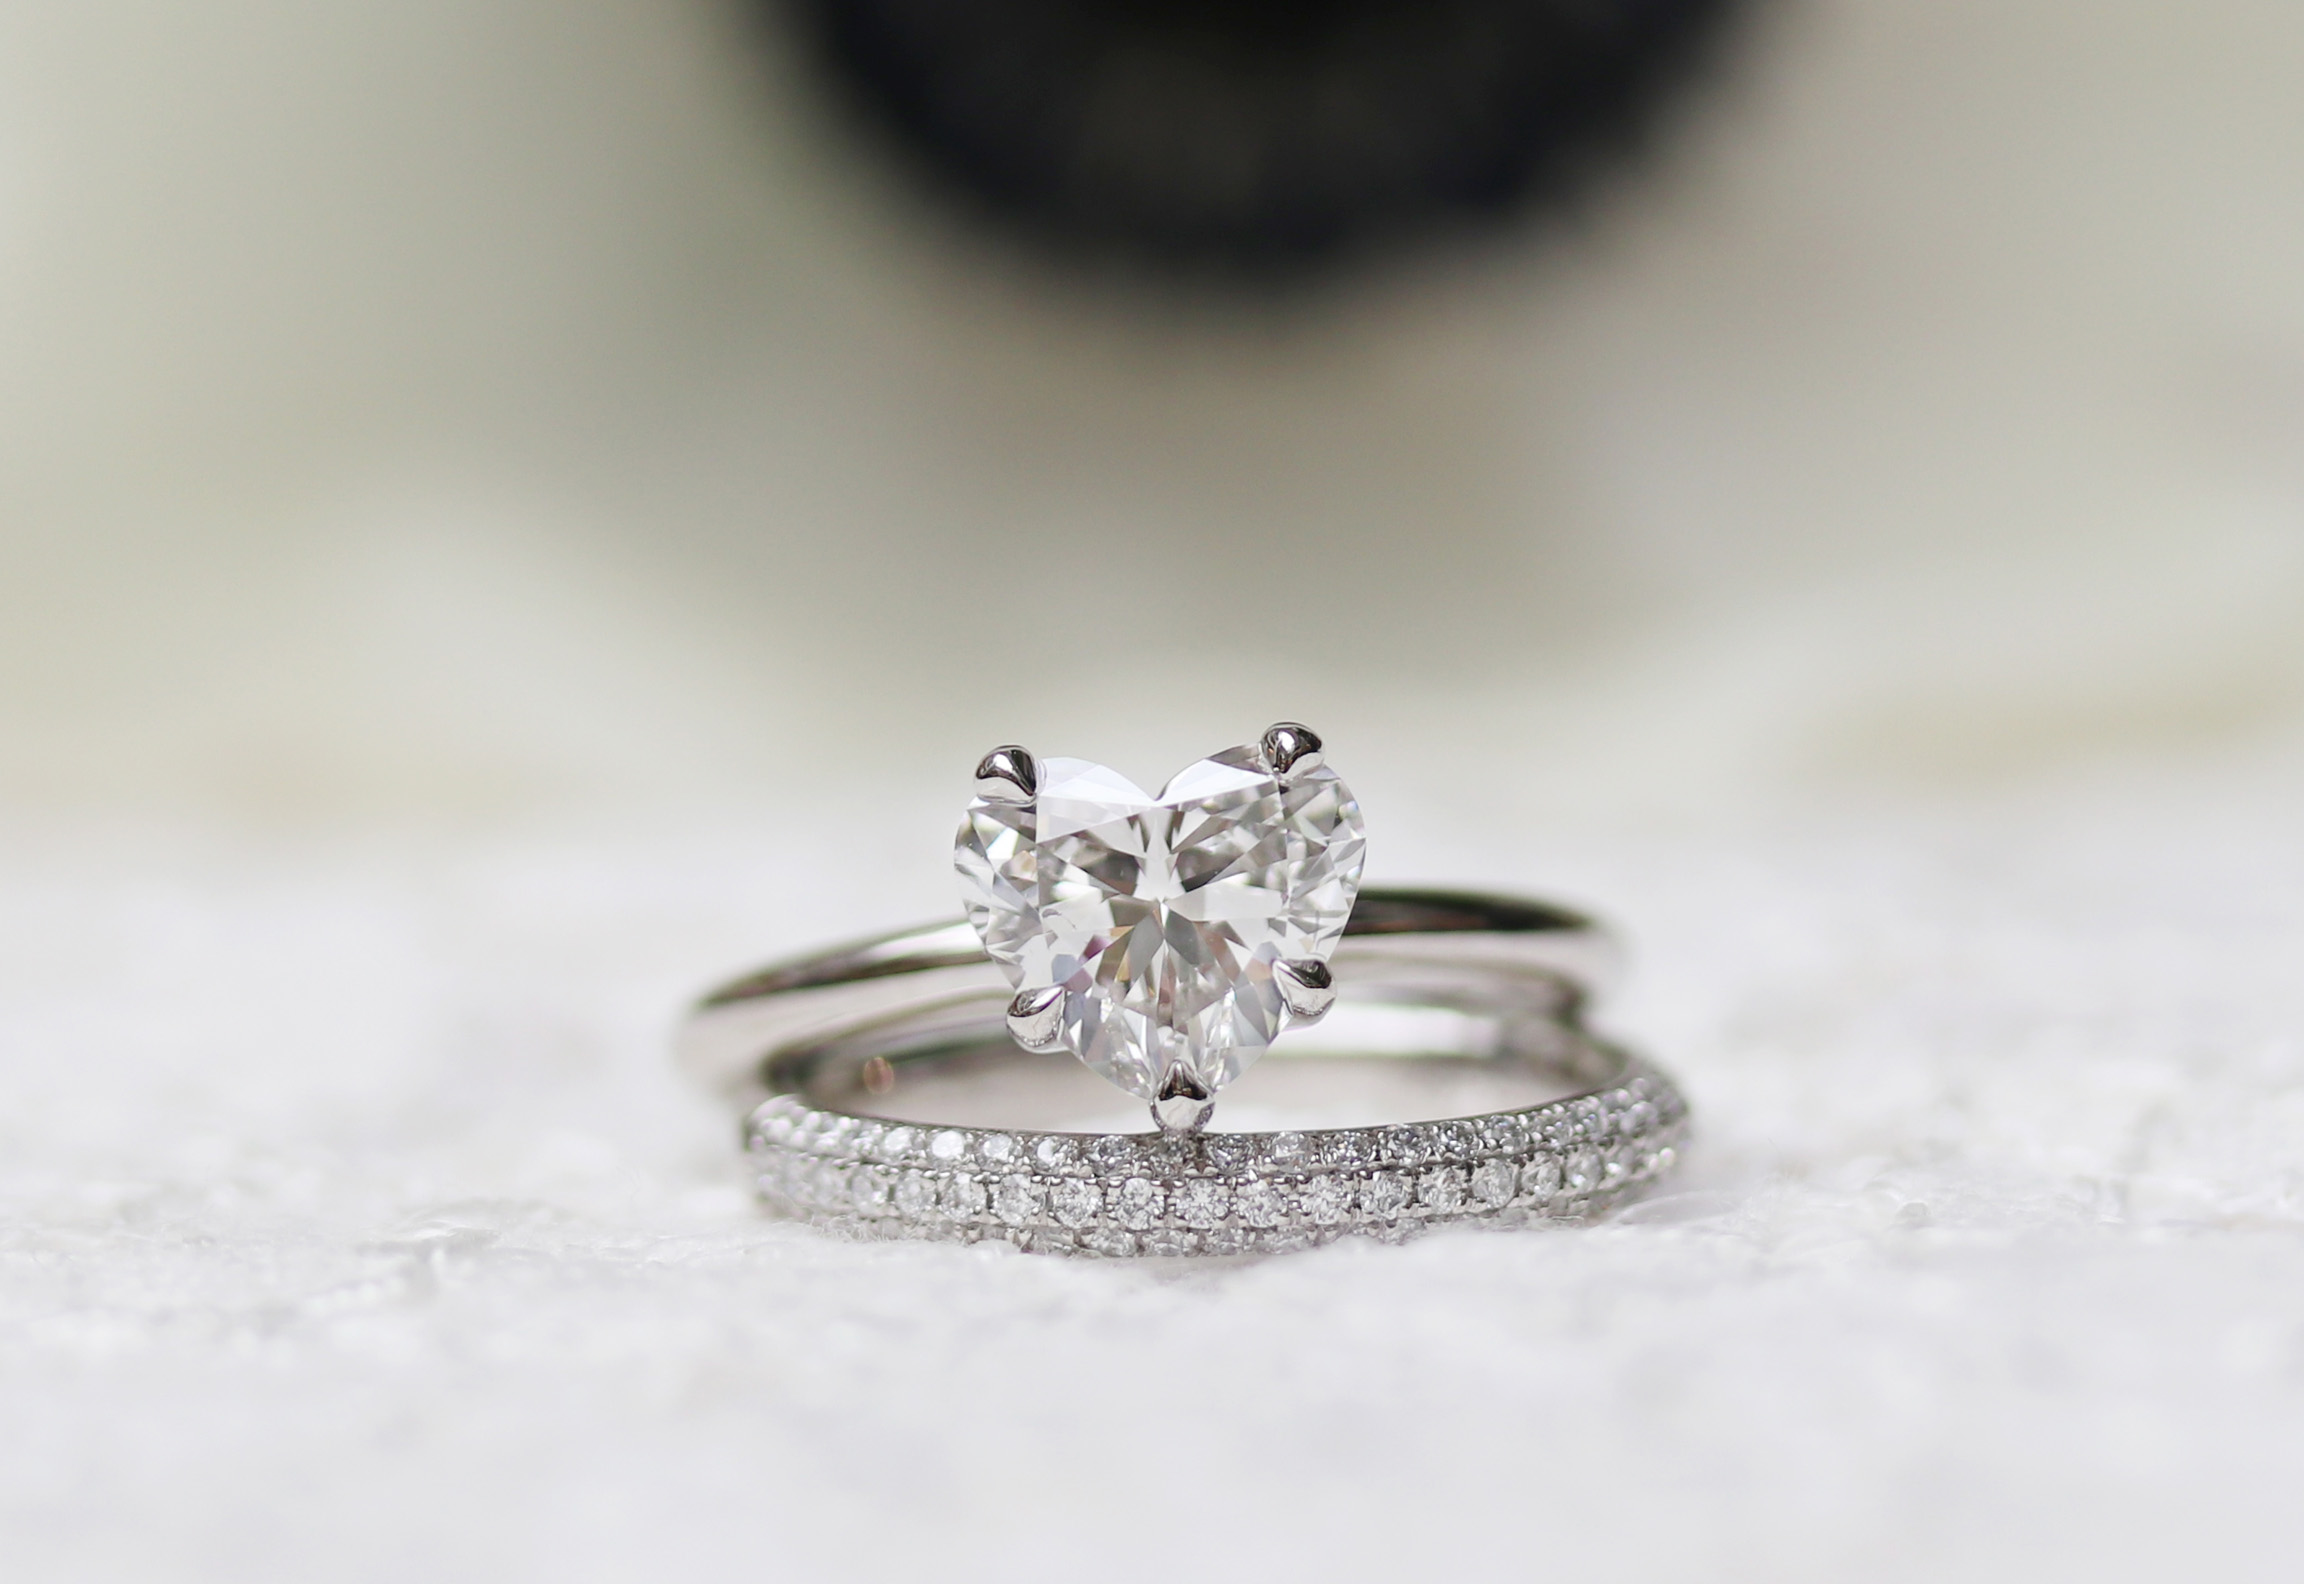 heart-solitaire-lab-created-diamond-AD242-p.jpg